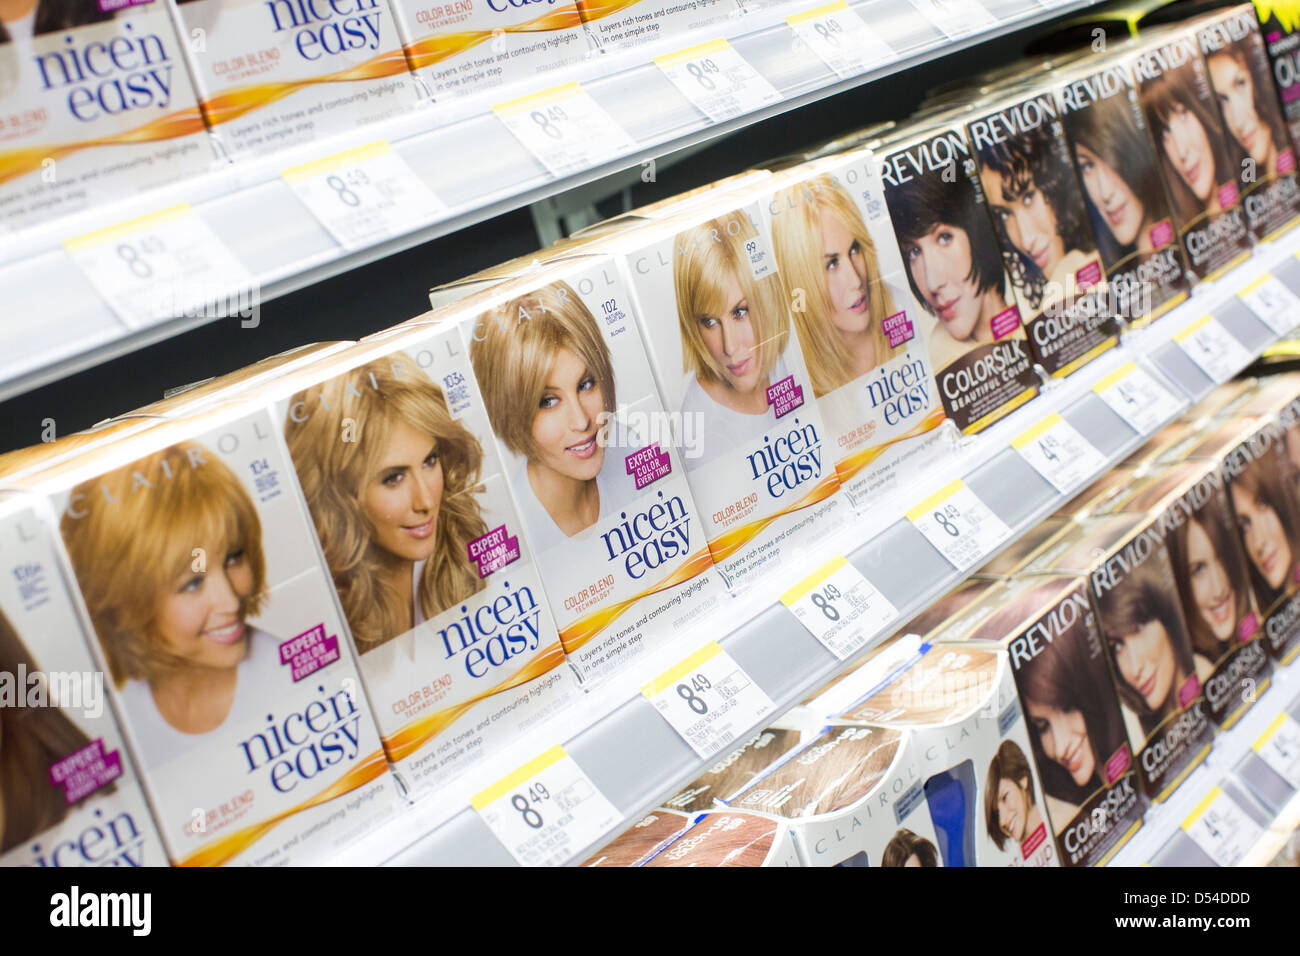 Clairol Hair Dye Products On Display At A Walgreens